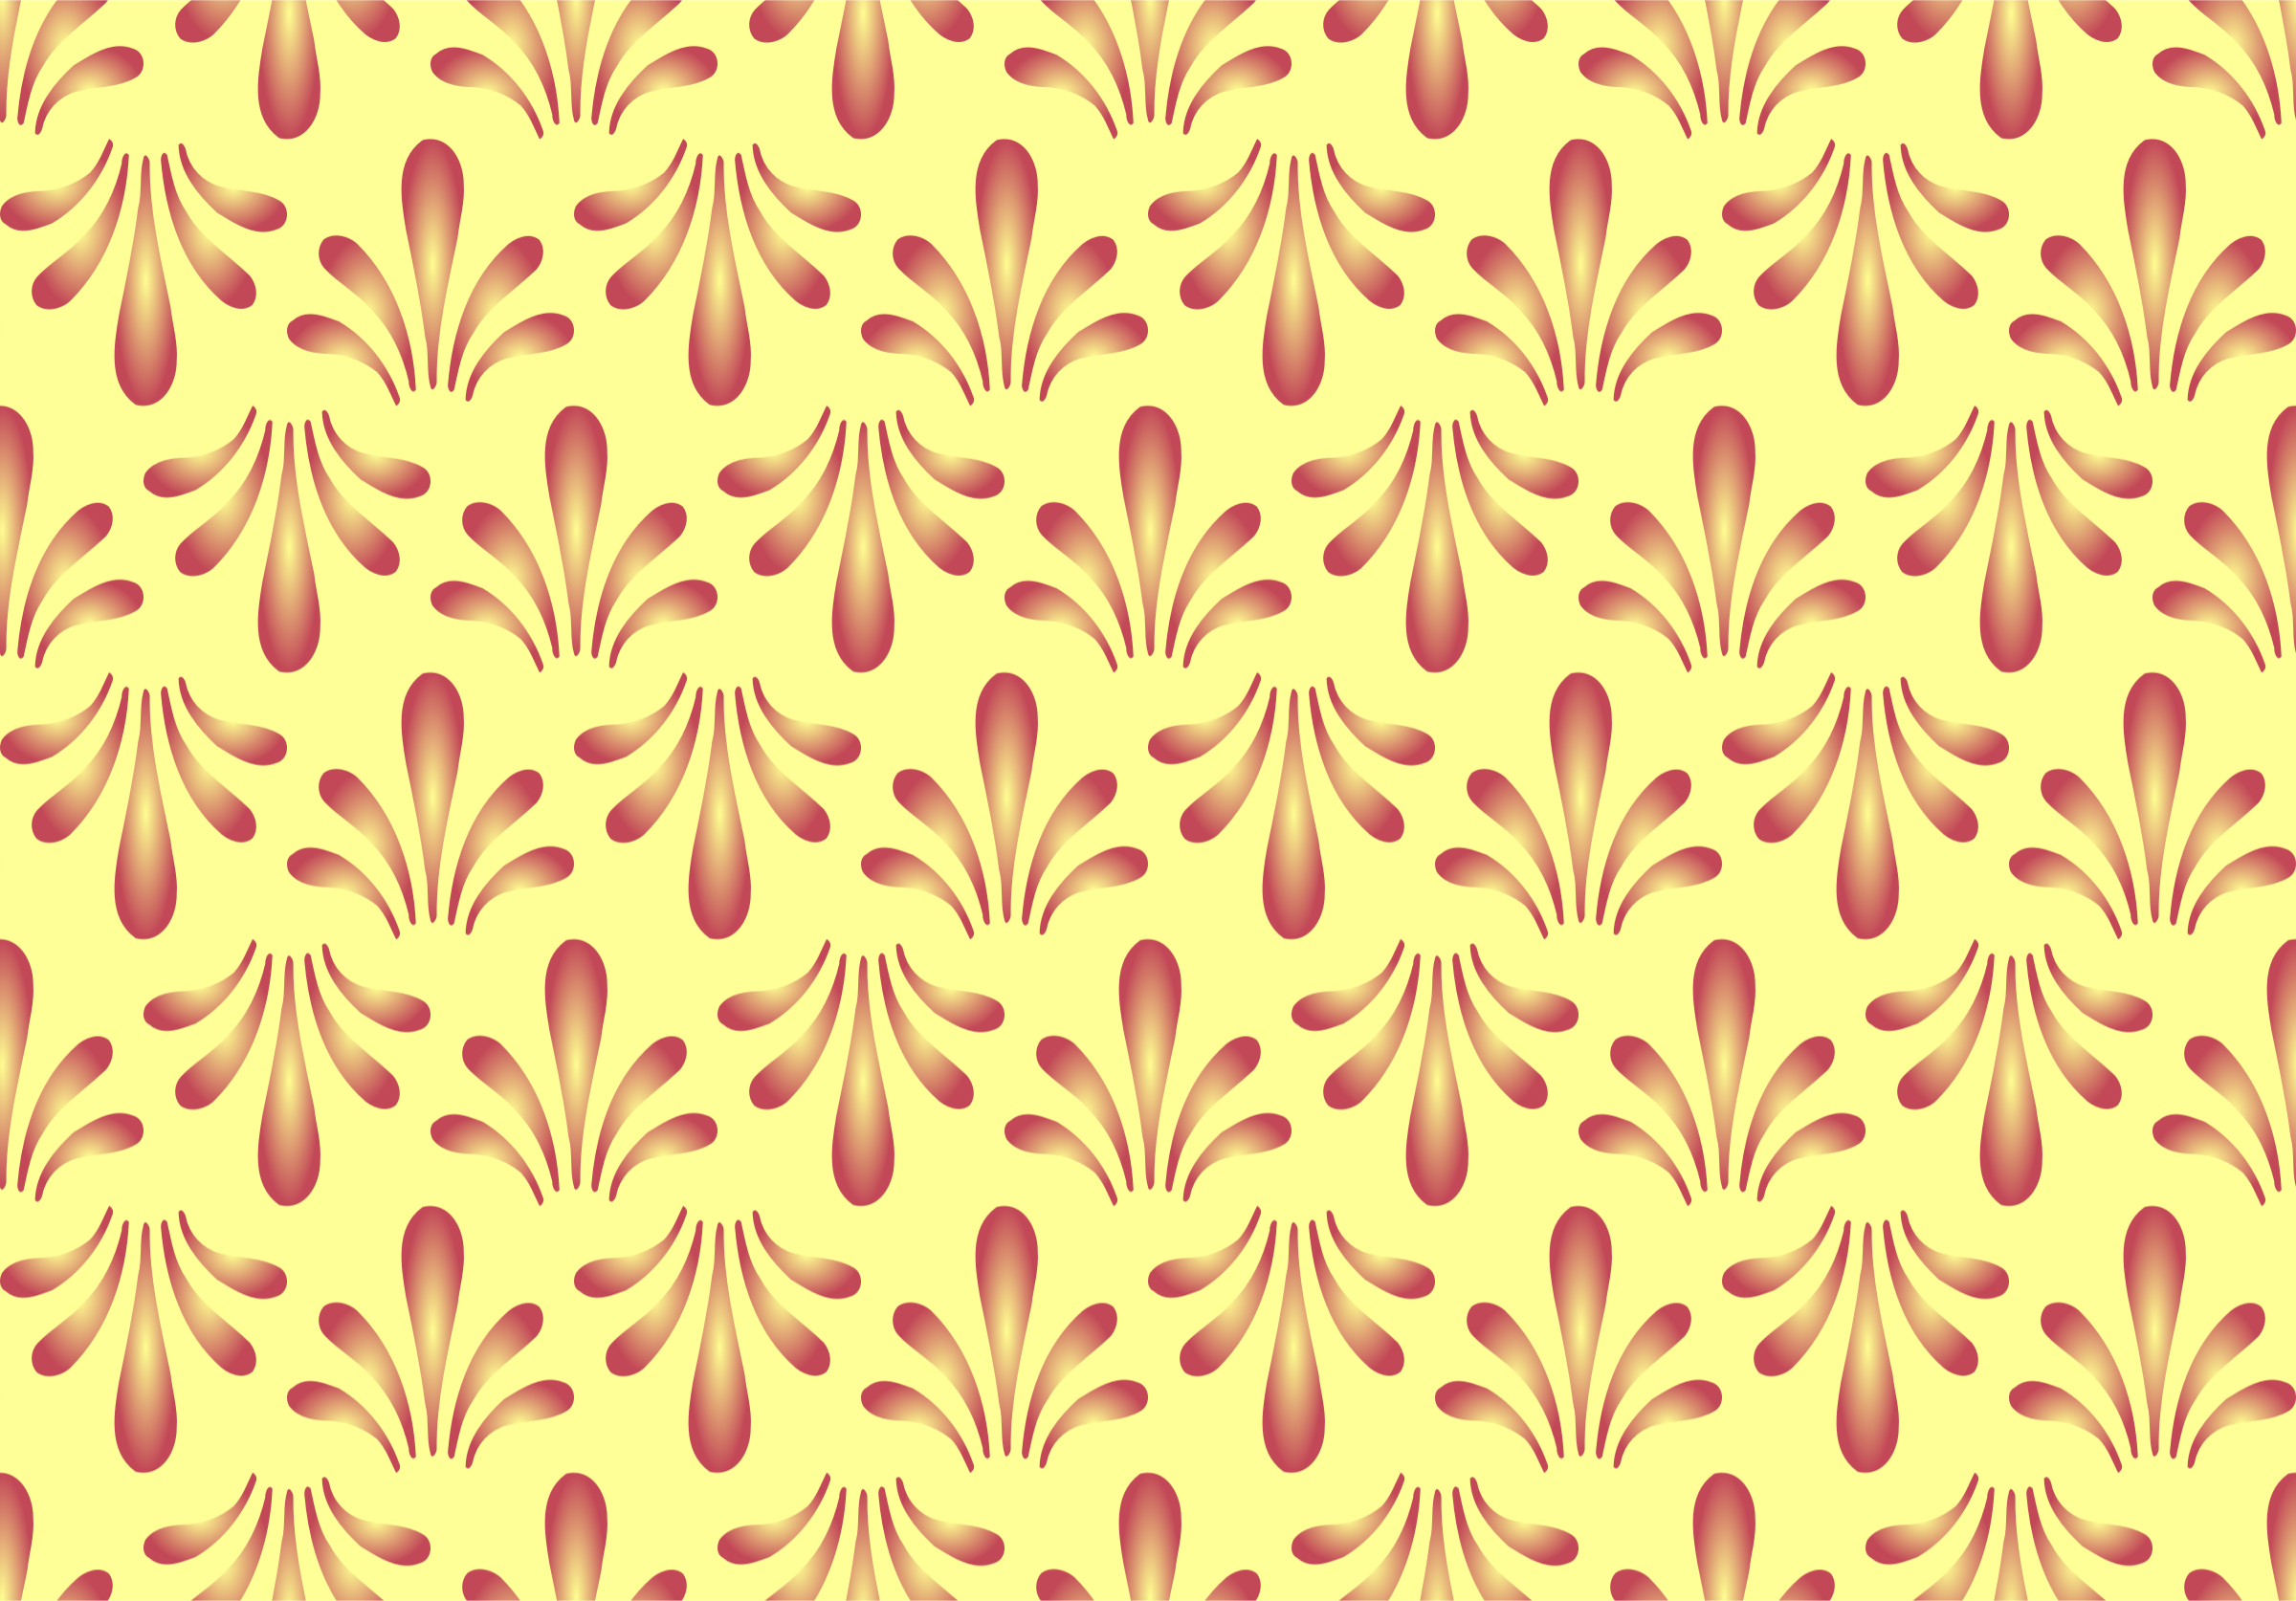 Background pattern 188 (colour) by Firkin